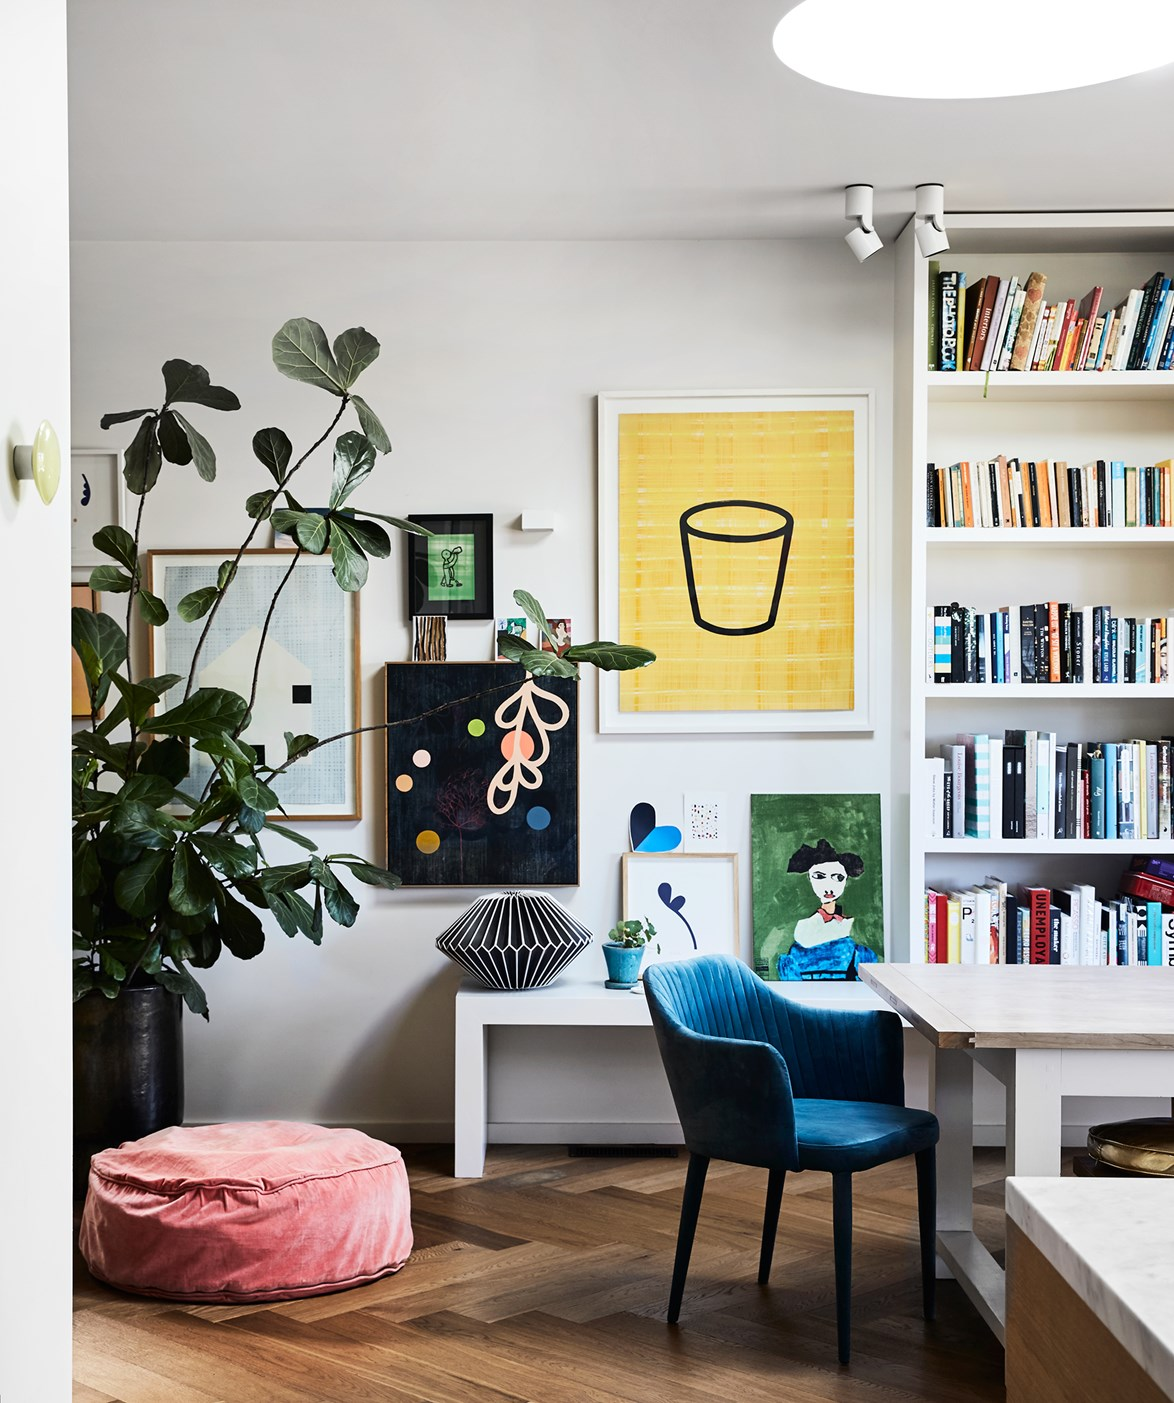 "Contemporary, quirky and effortlessly beautiful, designer [Rachel Castle's Sydney home](https://www.homestolove.com.au/rachel-castles-colourful-and-quirky-sydney-home-4729|target=""_blank"") was our most-clicked on home in 2017 and it's easy to see why. From Rachel's signature vibrant colours and artworks to the no-fuss finishes, this is a home that truly represents it's owners and how they like to live. *Photo: Sharyn Cairns* 